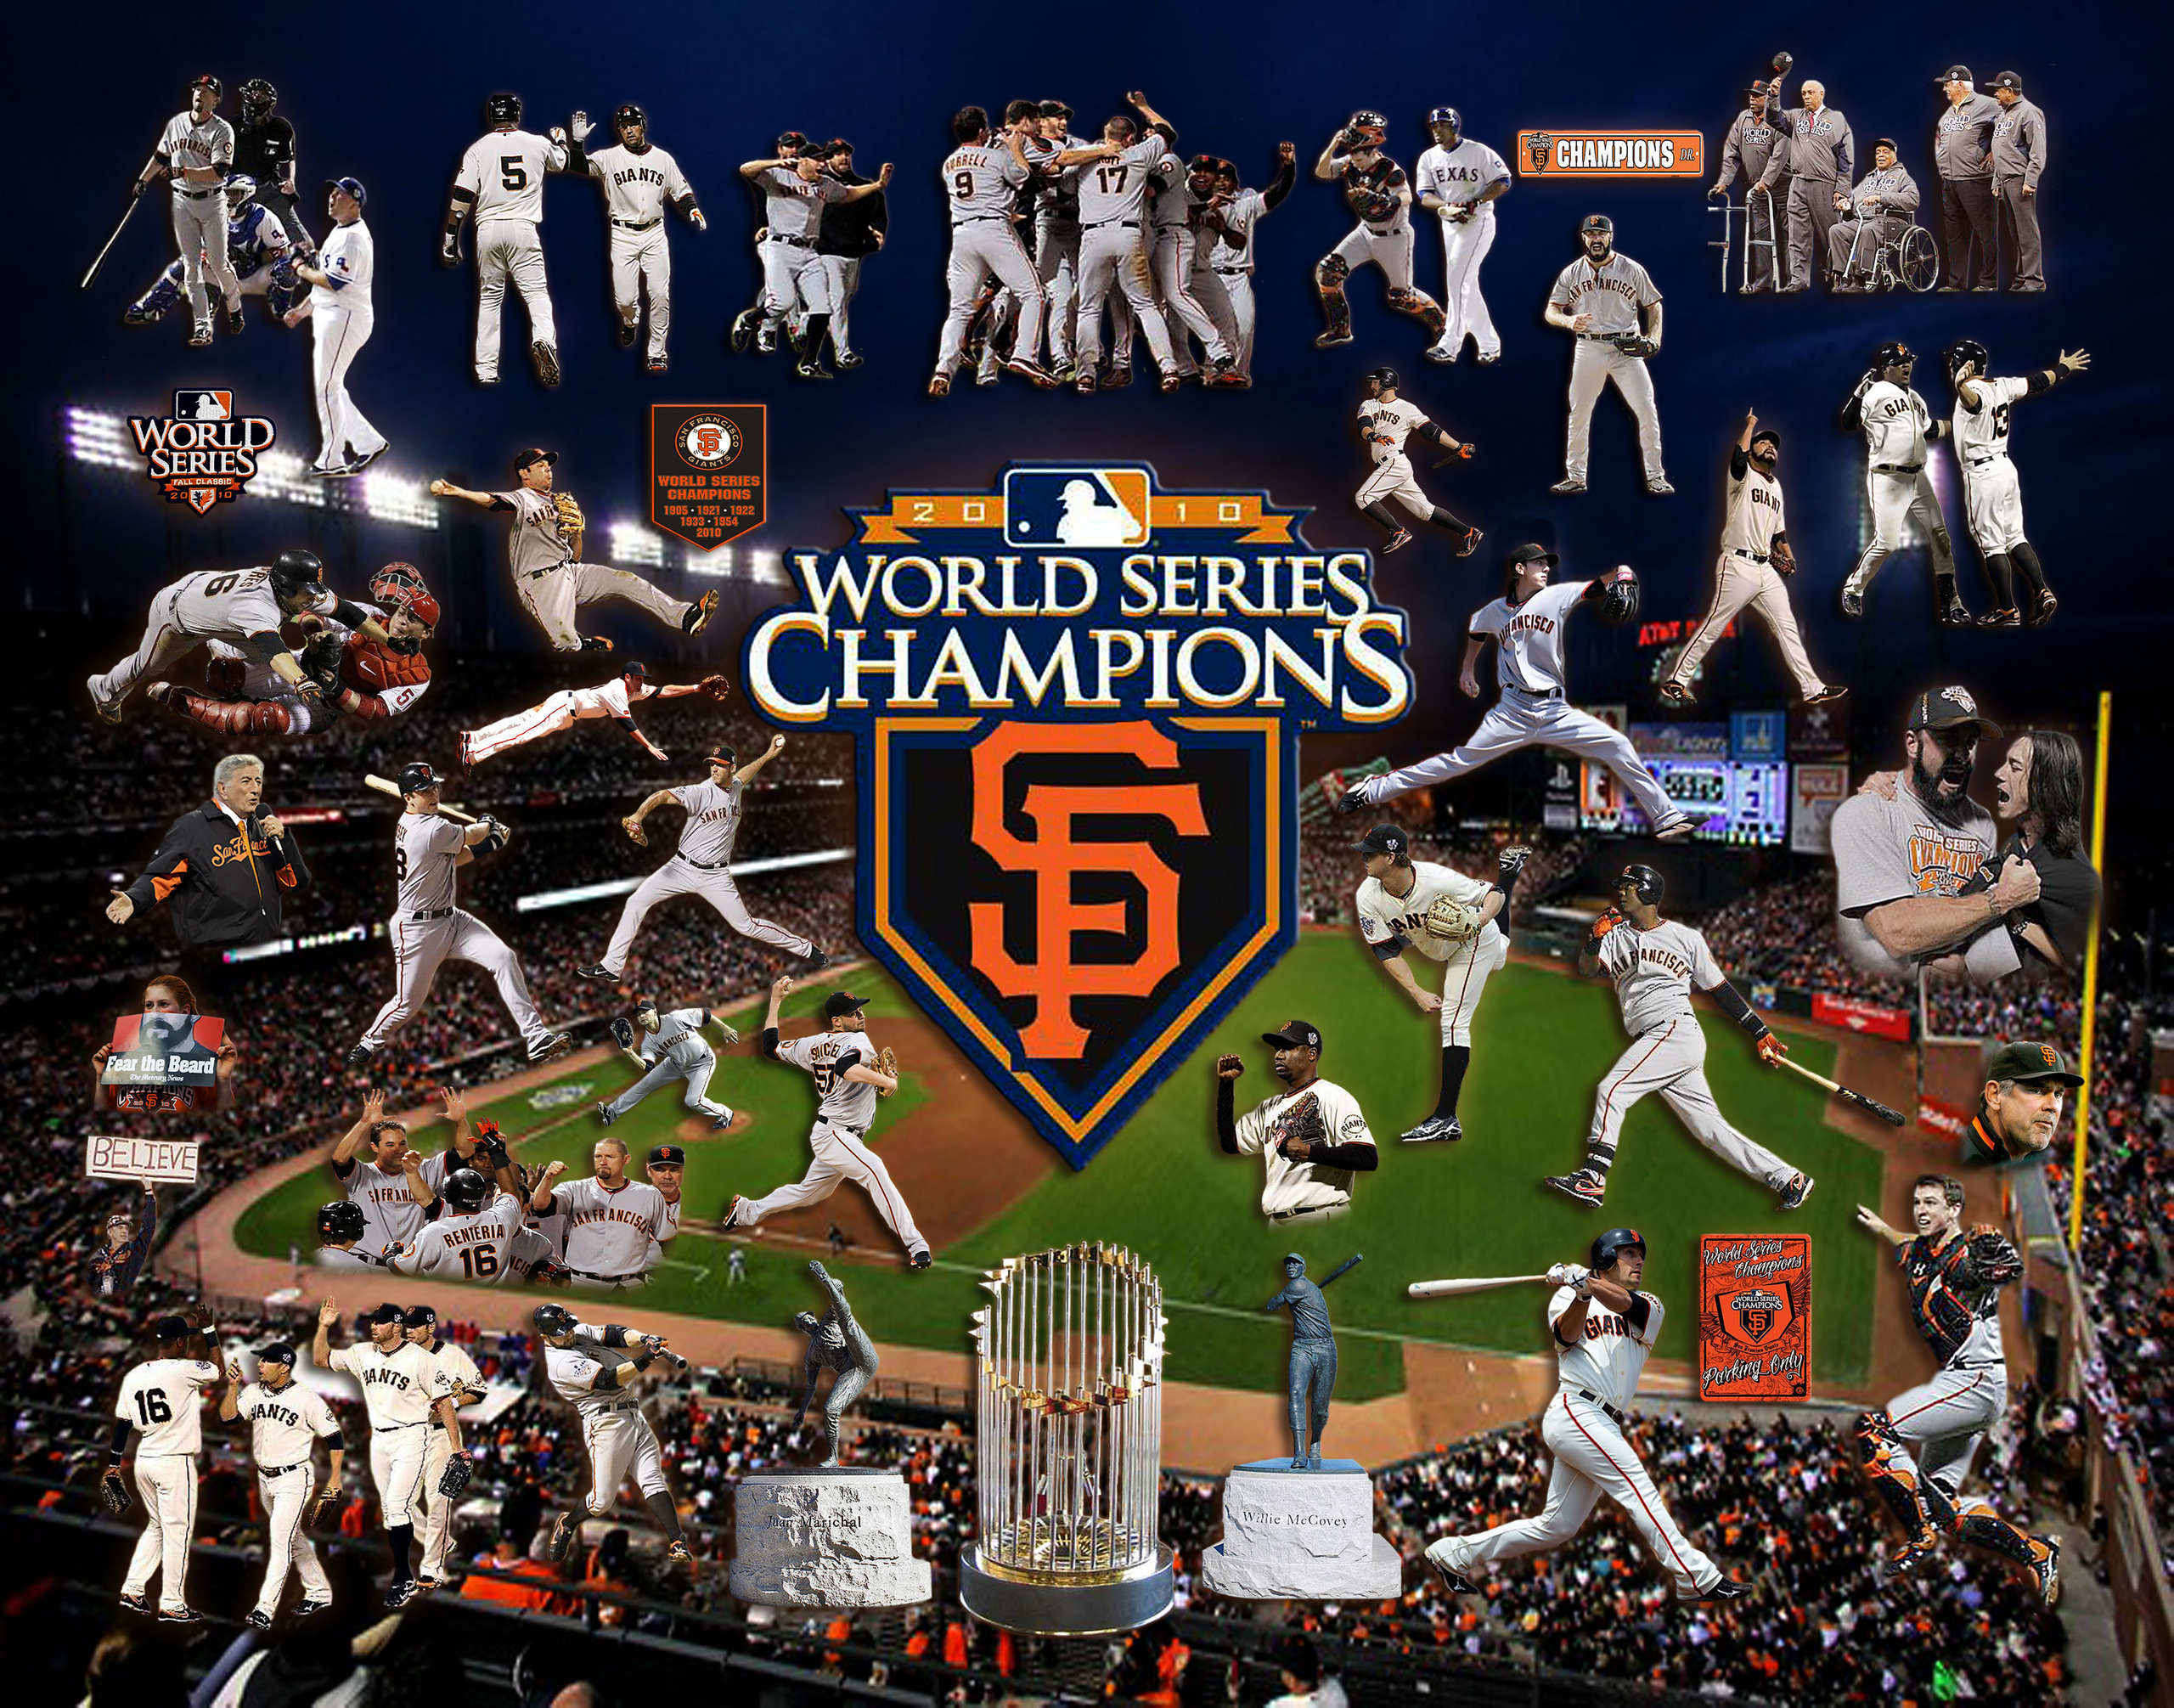 Champions: Giants Wallpaper& Collection : SFGiants